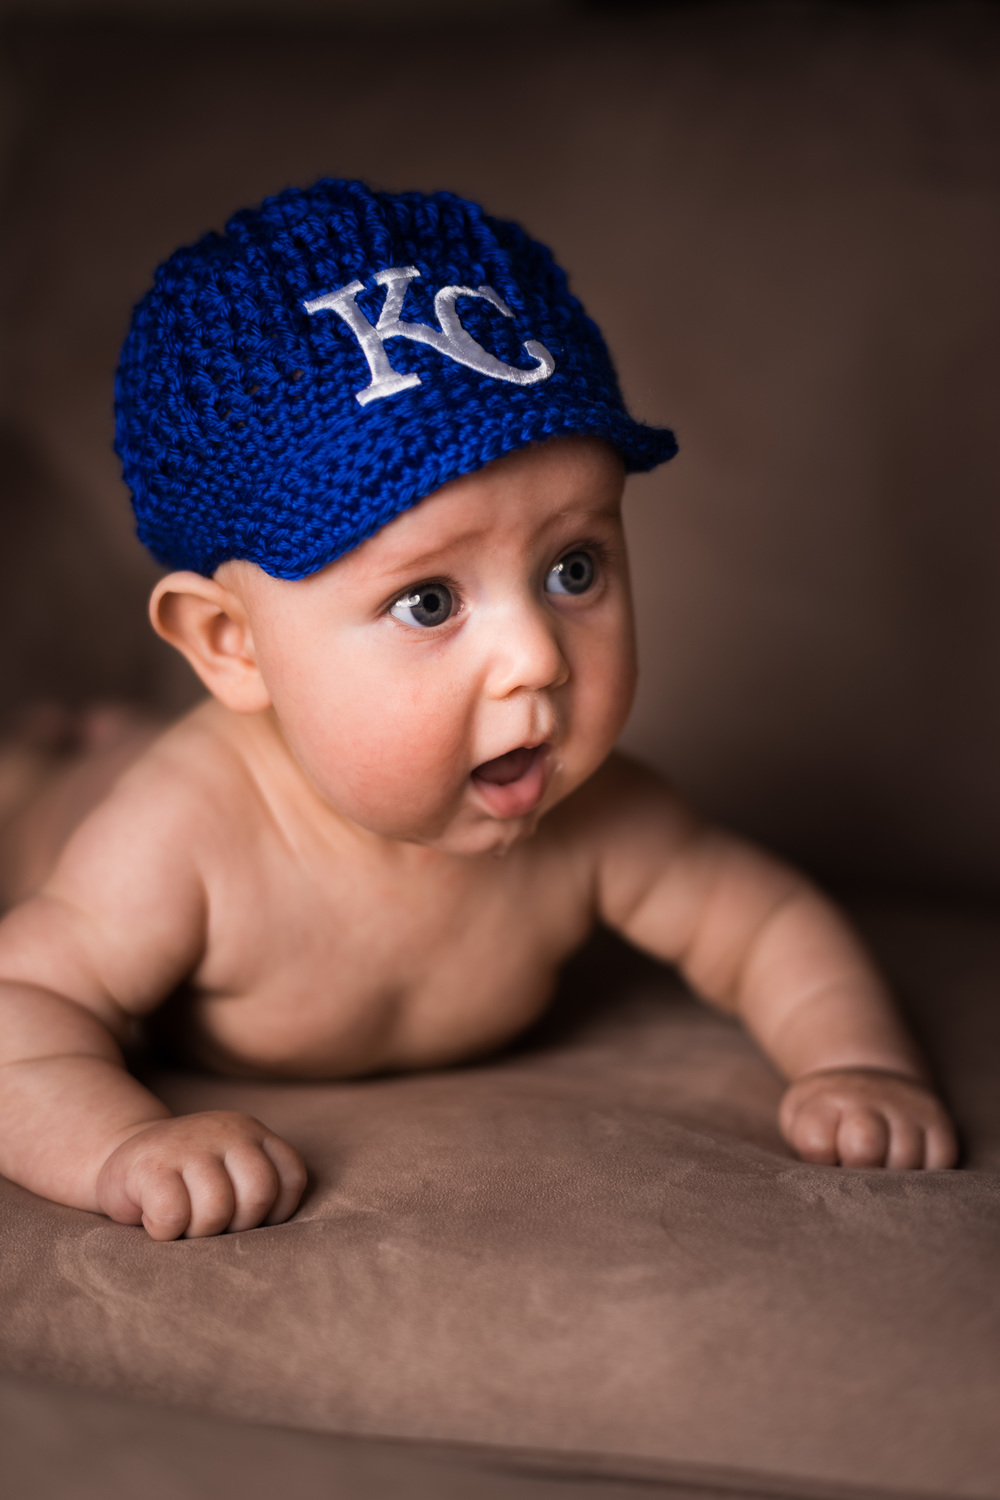 brett-smith-baby-kc-royals4.jpg